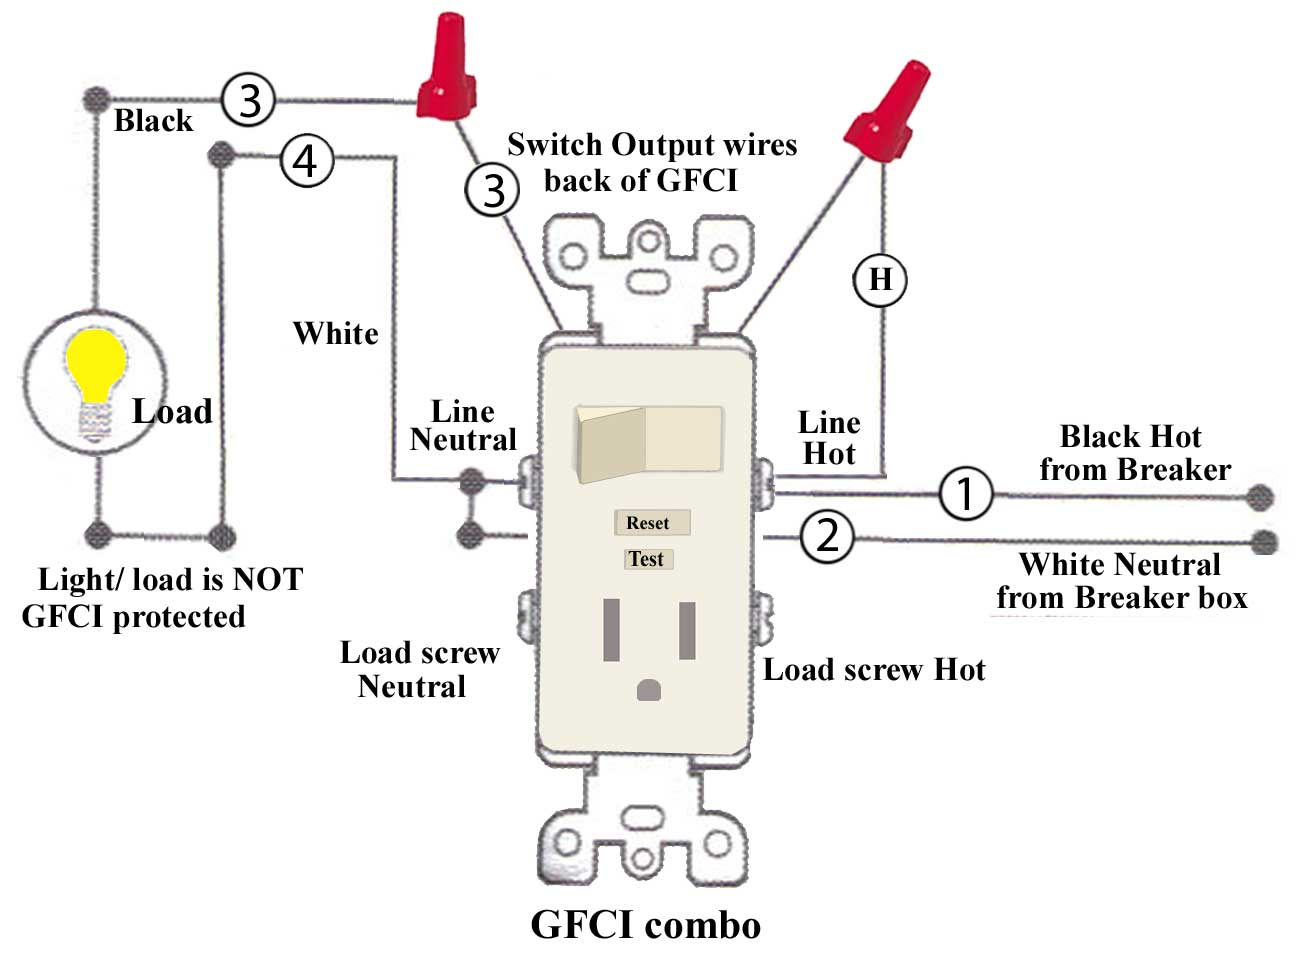 CB3DB Afci And Gfci Wiring Diagram | Digital Resources on 3 wire rocker switch wiring diagram, 3 wire proximity switch wiring, 3 wire rtd wiring diagram,